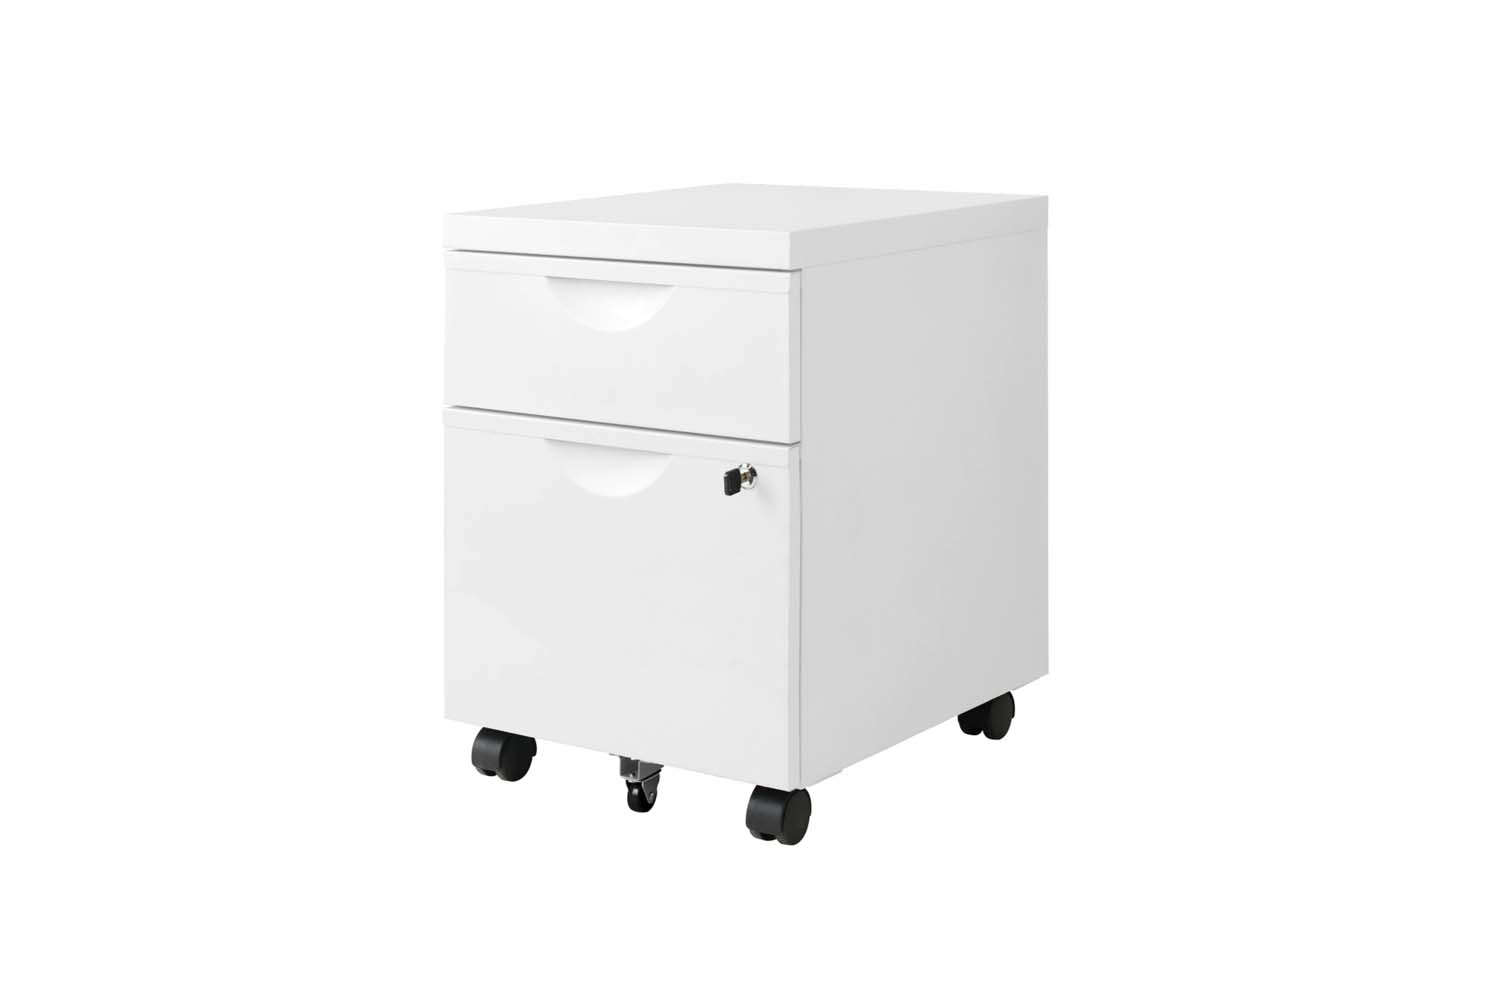 Ikea Erik Drawer Unit 2-Drawers Casters White